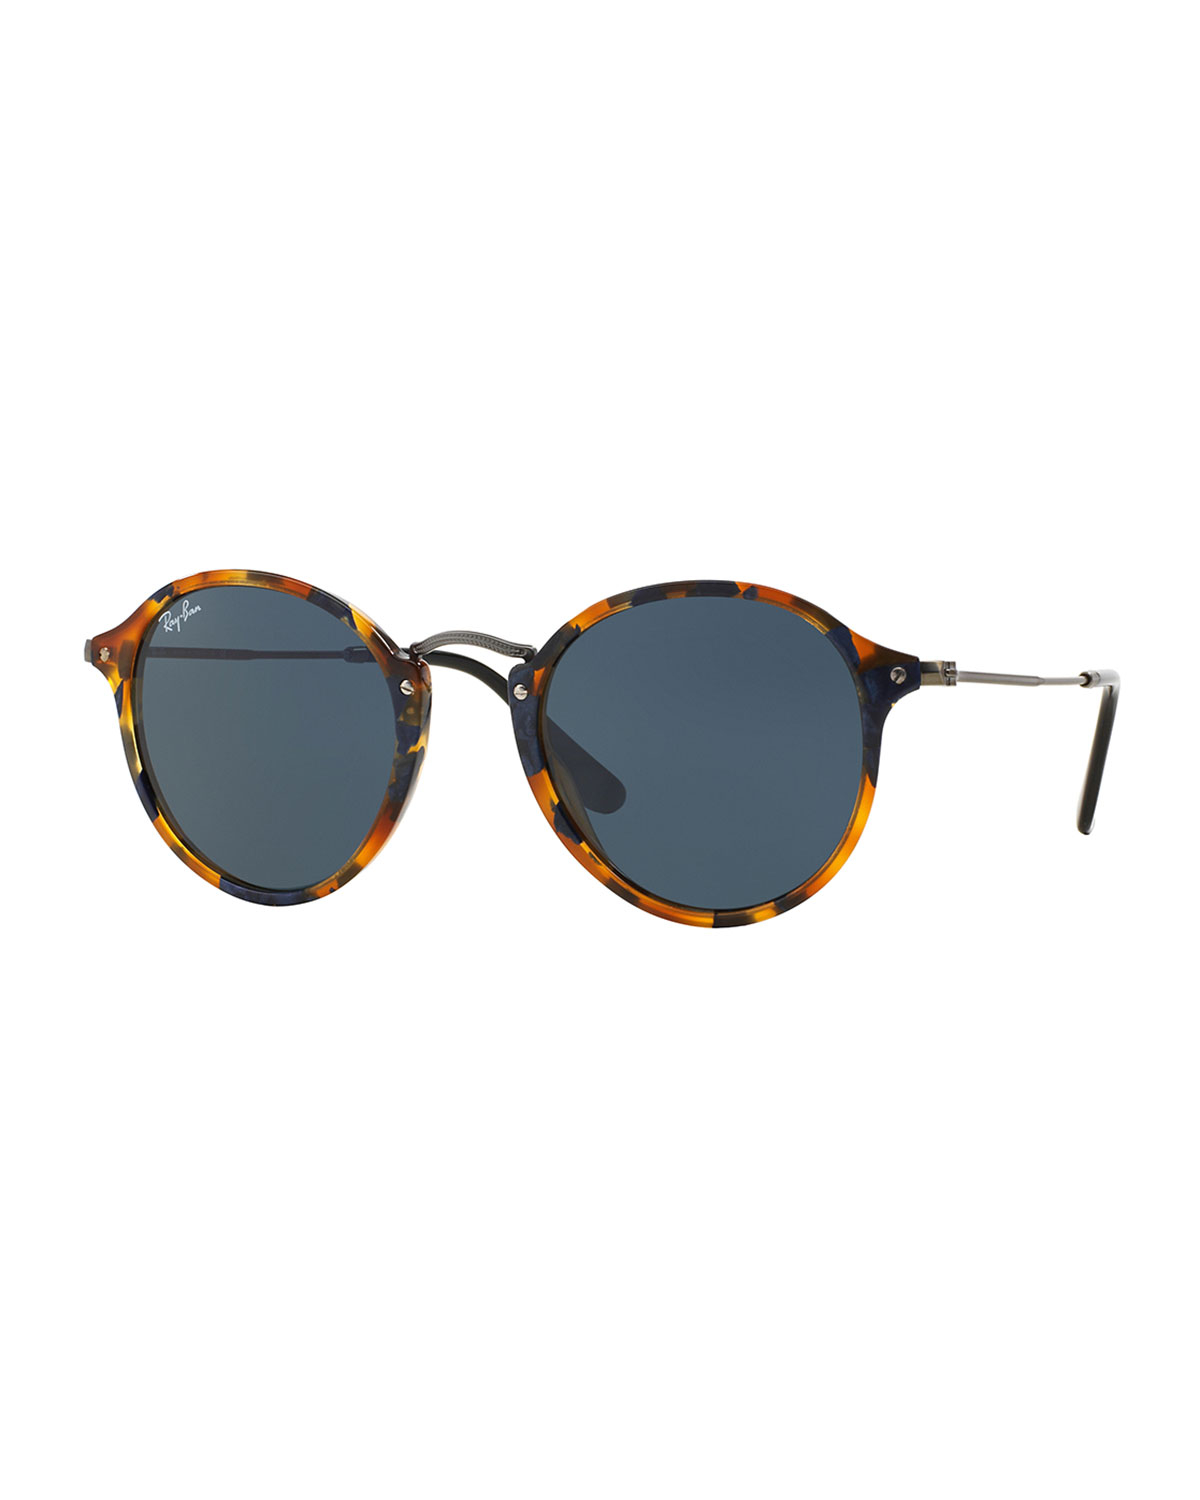 Ray-ban Round Plastic/metal Sunglasses in Green (BLACK) Lyst